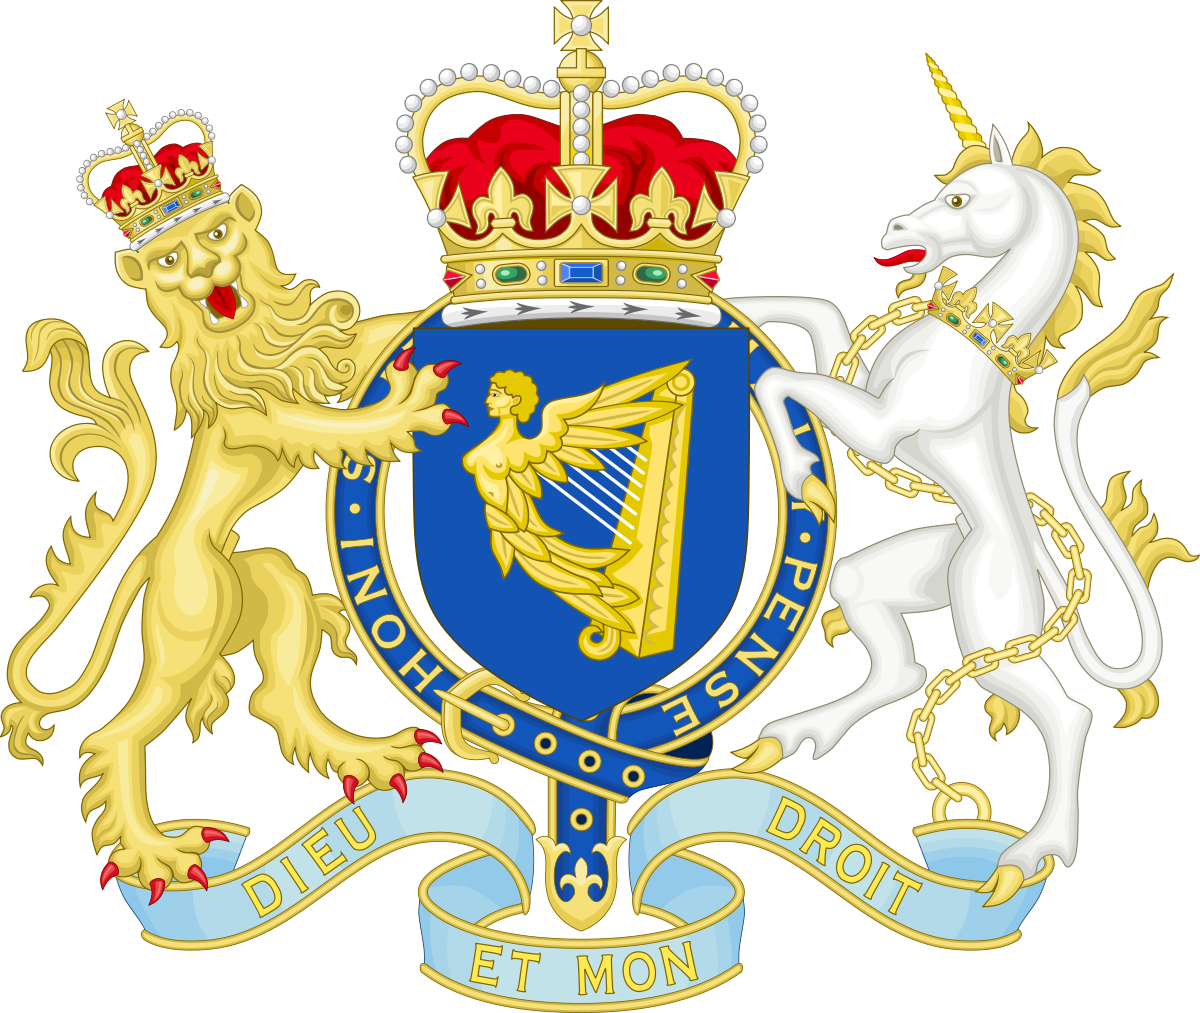 United kingdom government clipart banner free library Acts of Union 1800 - Wikipedia banner free library